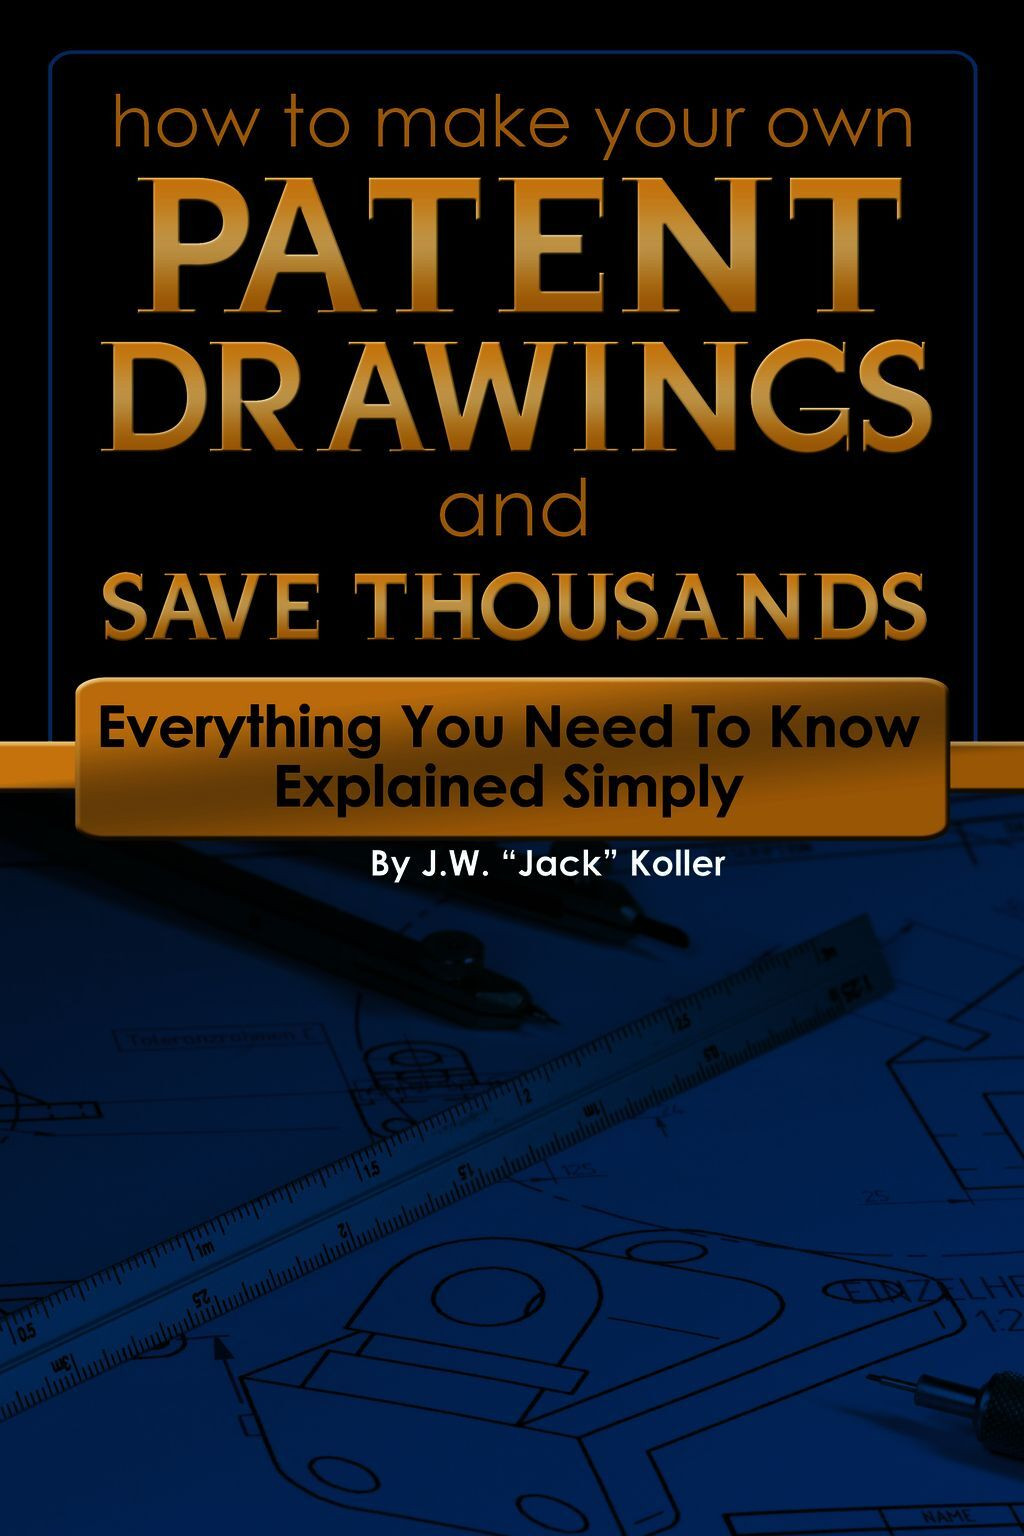 How To Make Your Own Patent Drawing And Save Thousands